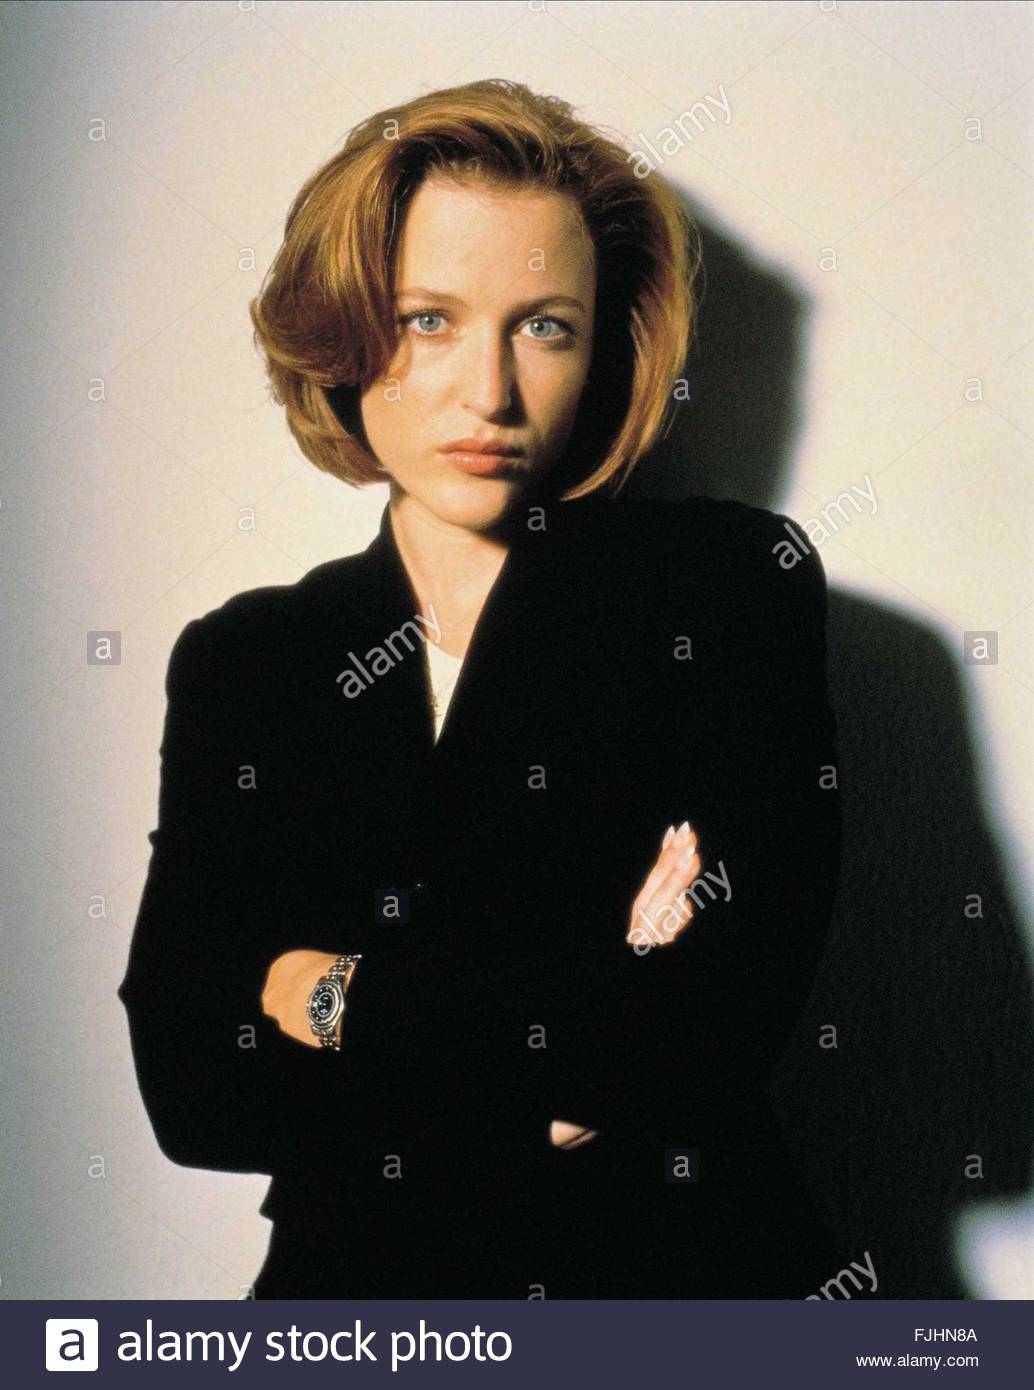 GILLIAN ANDERSON THE X FILES (1993) - Stock Image